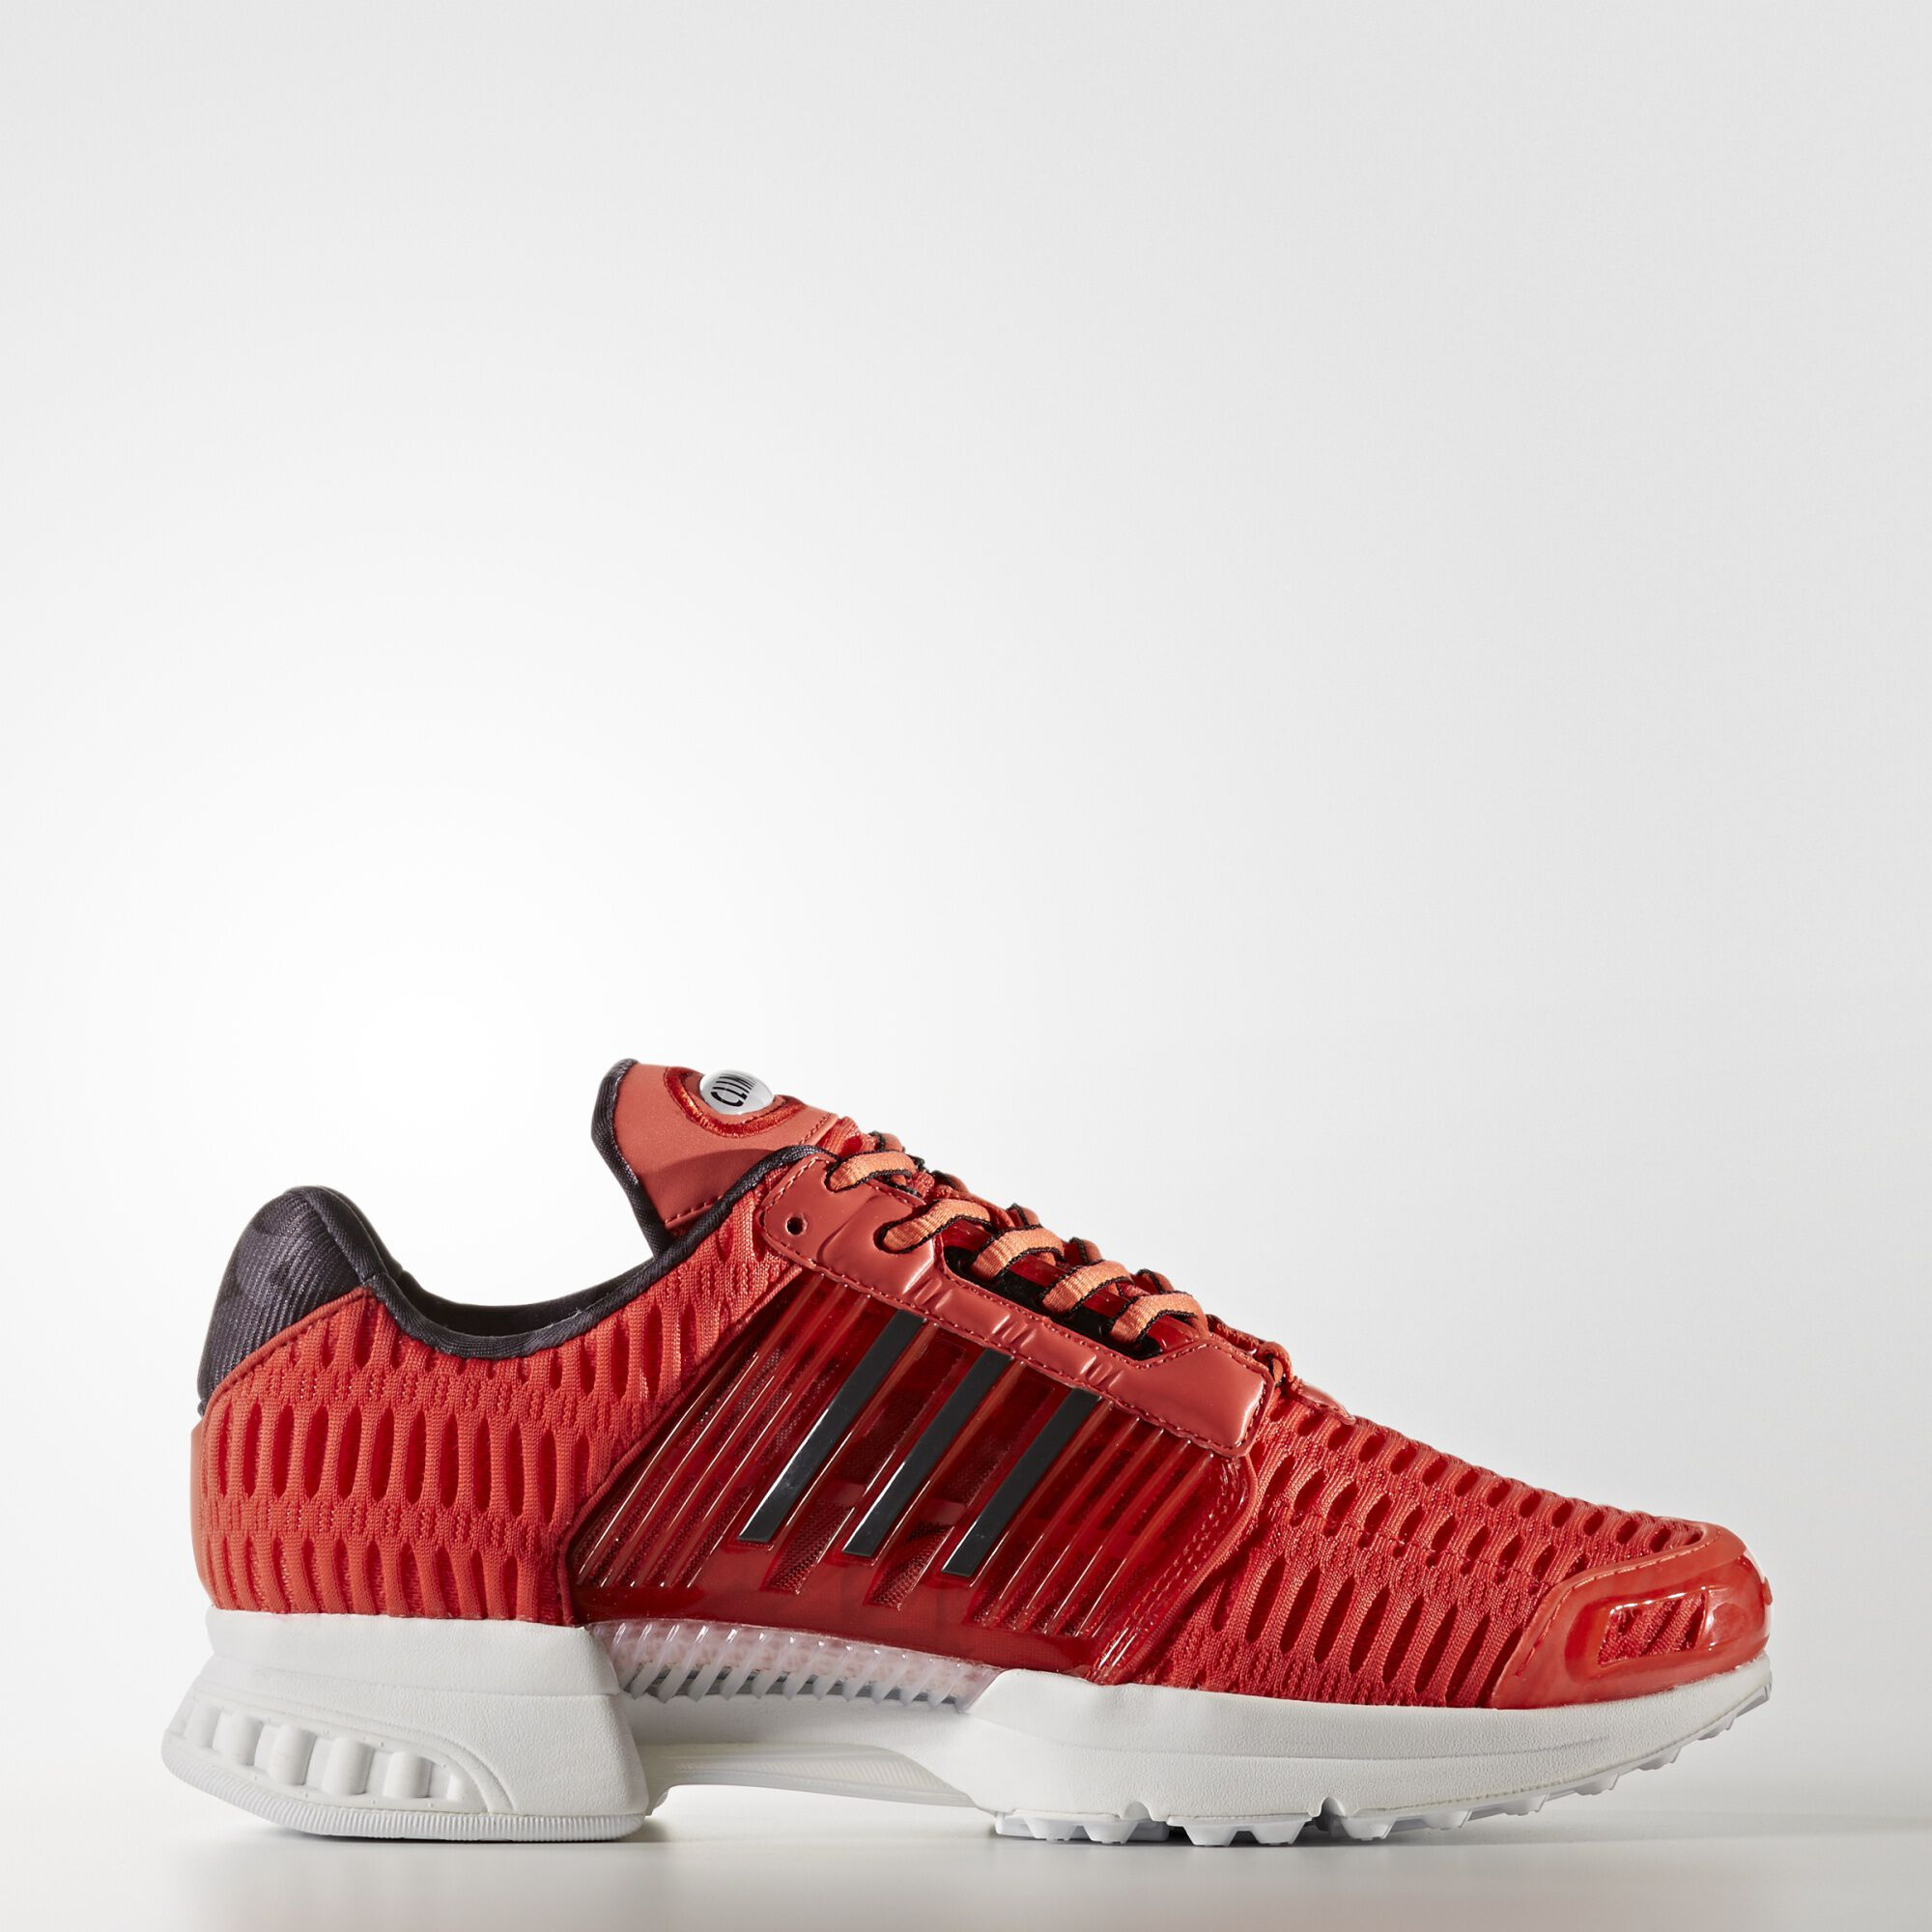 Adidas Climacool White And Red